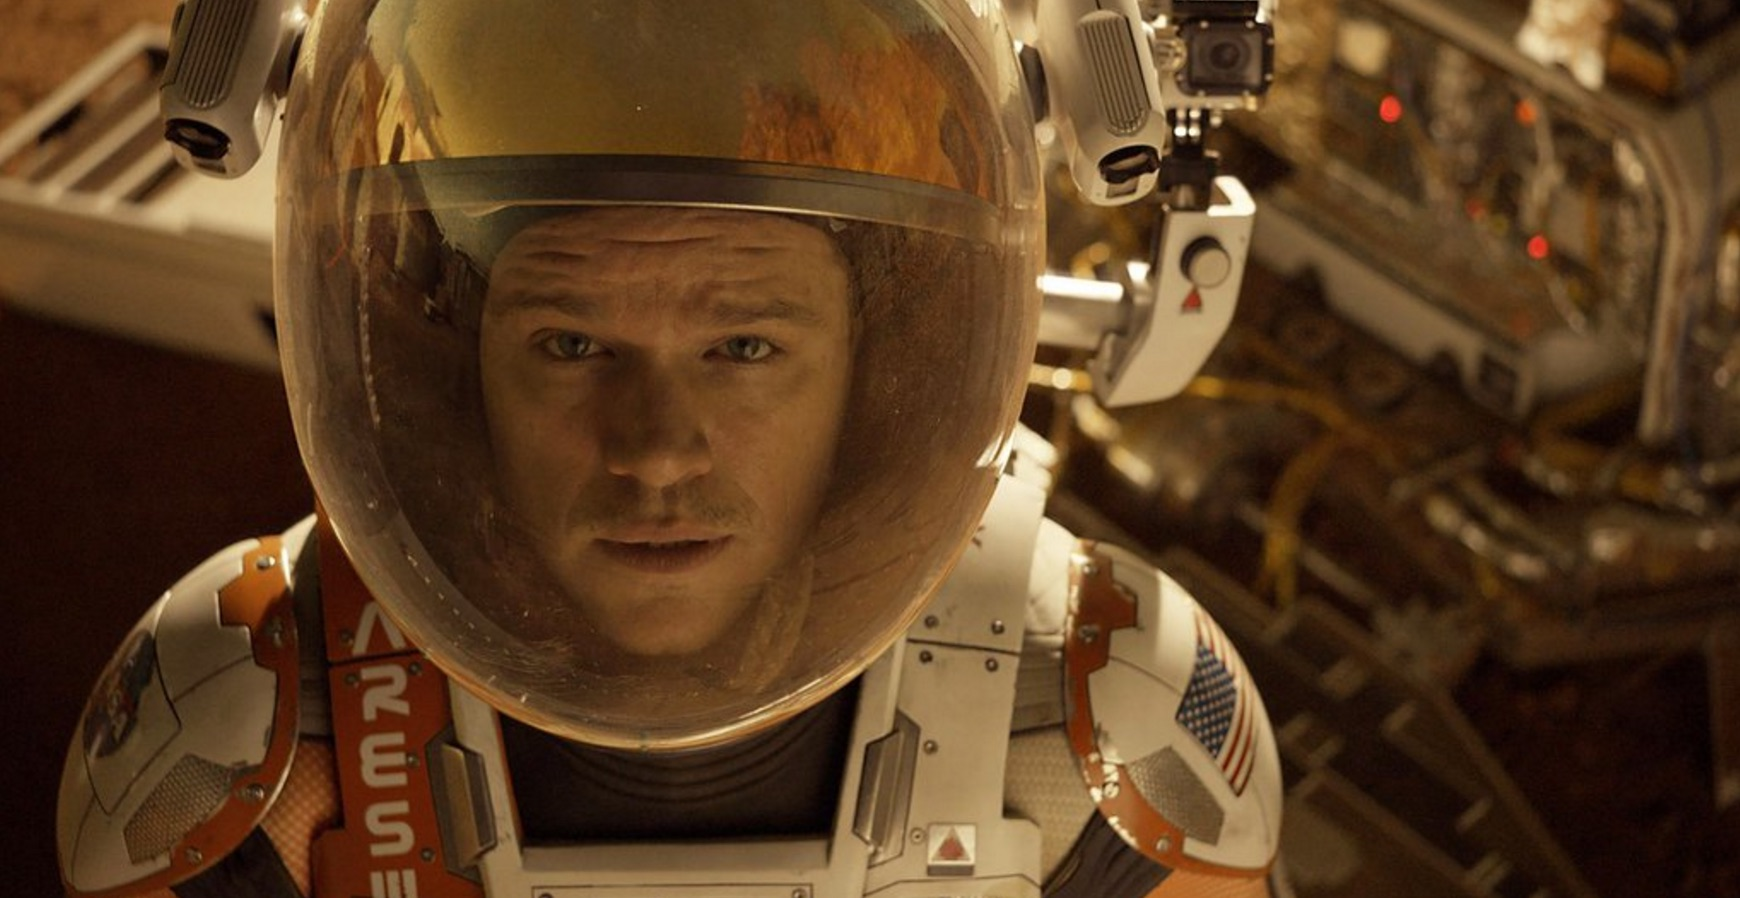 Rescuing all of Matt Damon's characters would cost a whopping $900 billion